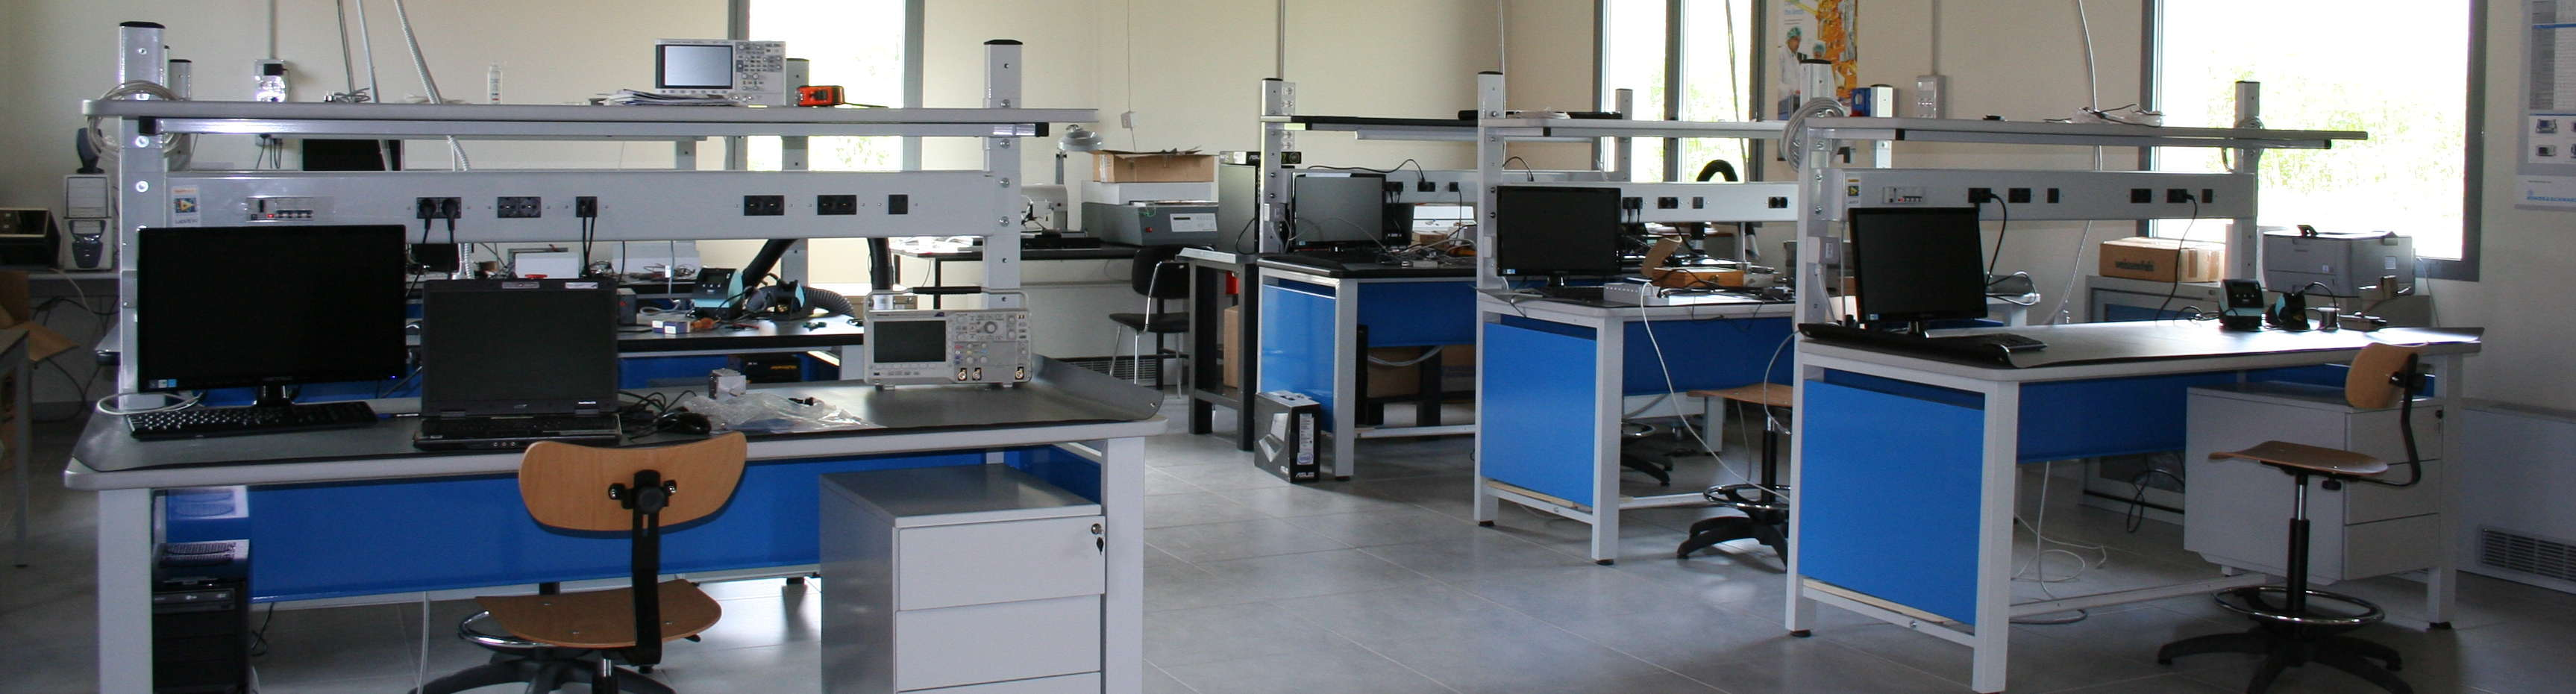 laboratorio_elettronica.jpg